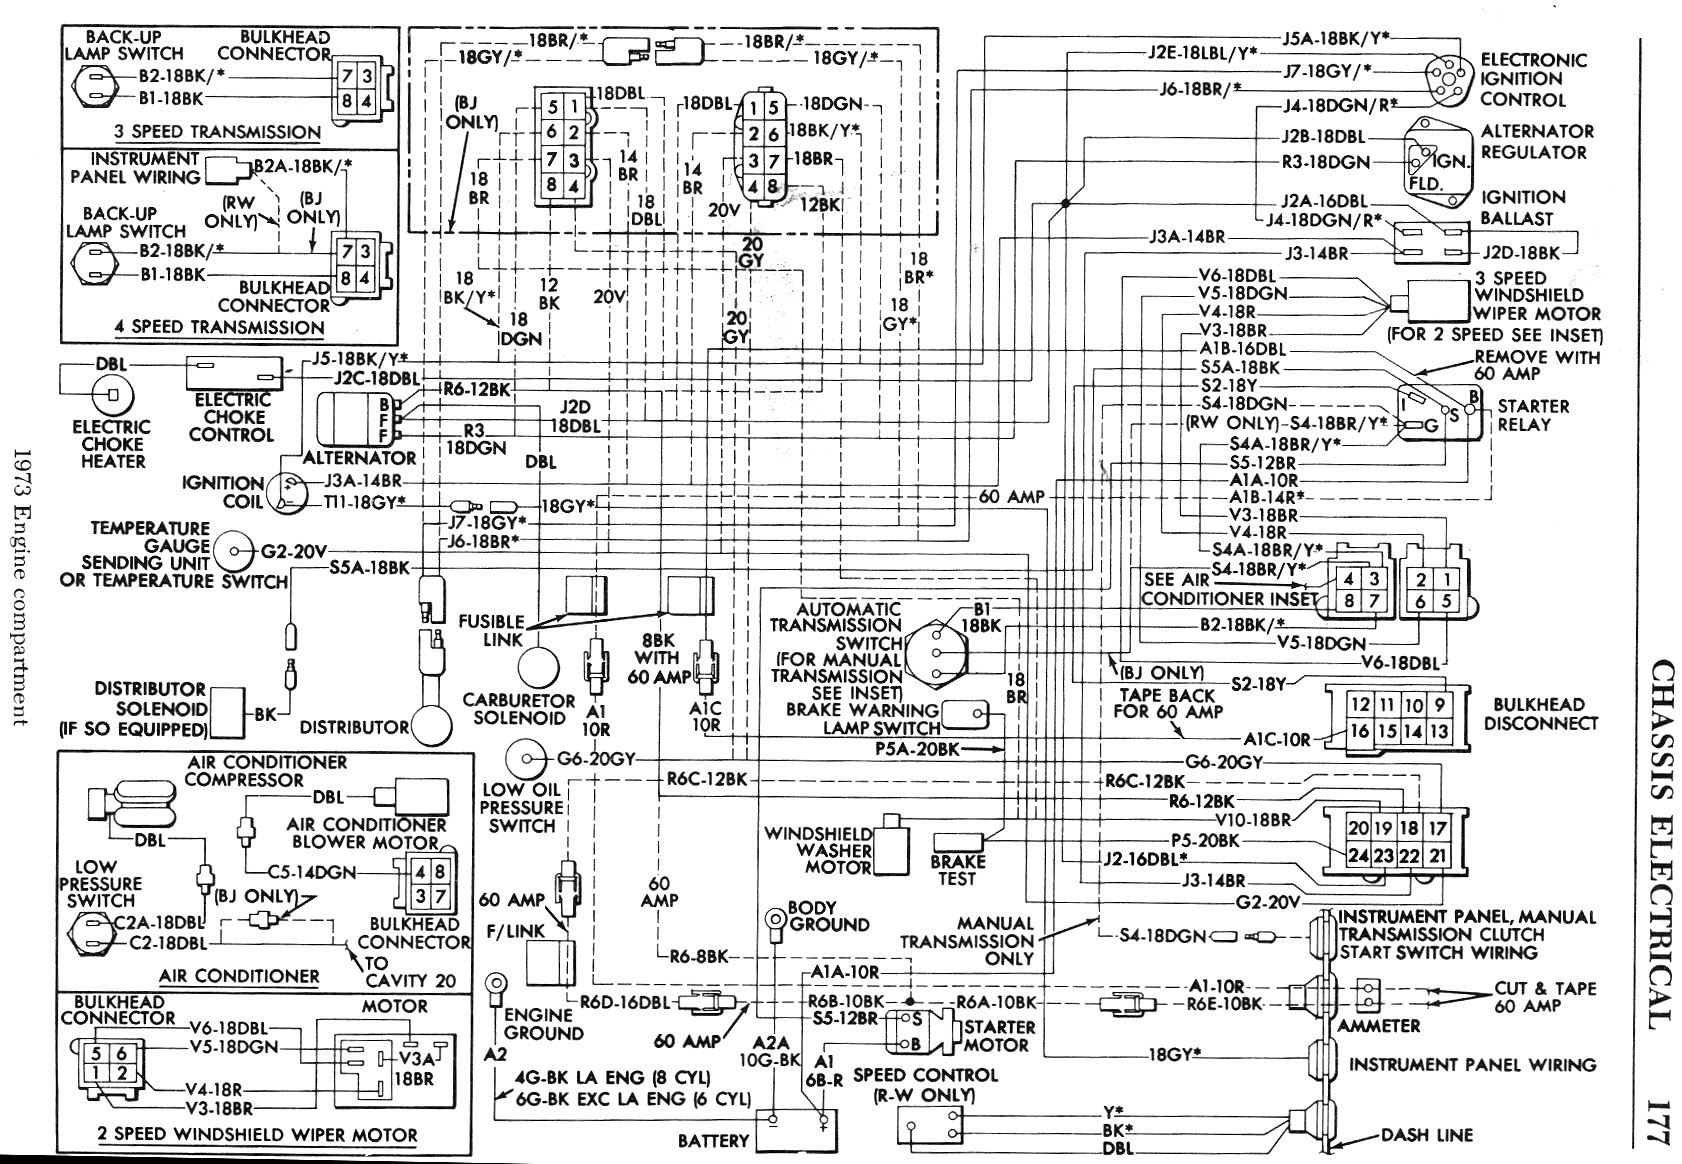 hight resolution of 1973 chrysler alternator wiring diagram wiring diagram 1984 corvette wiring diagram 1970 chrysler plymouth alternator wiring